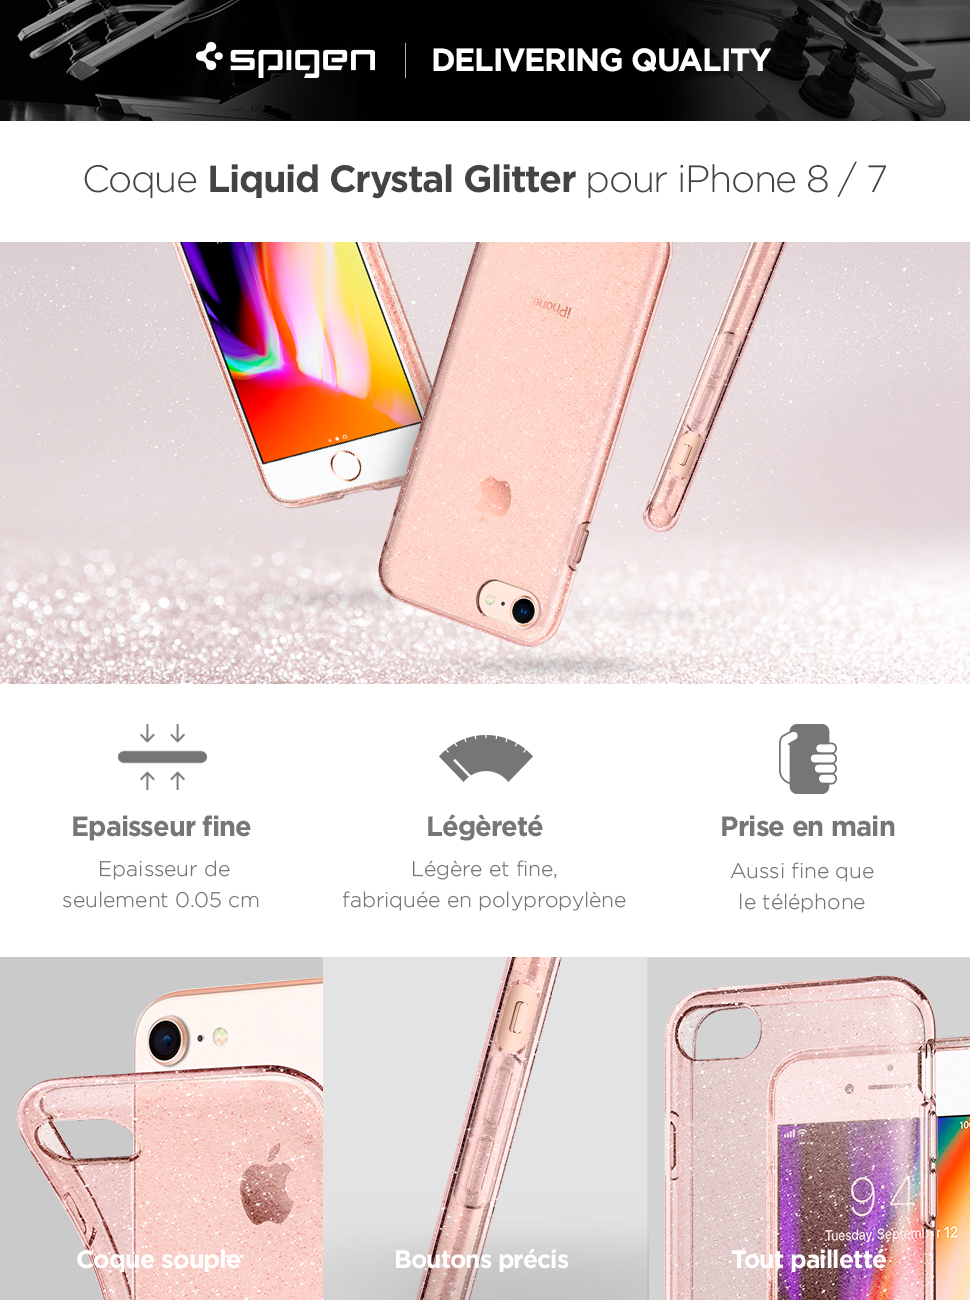 coque iphone 8 plus spigen glitter